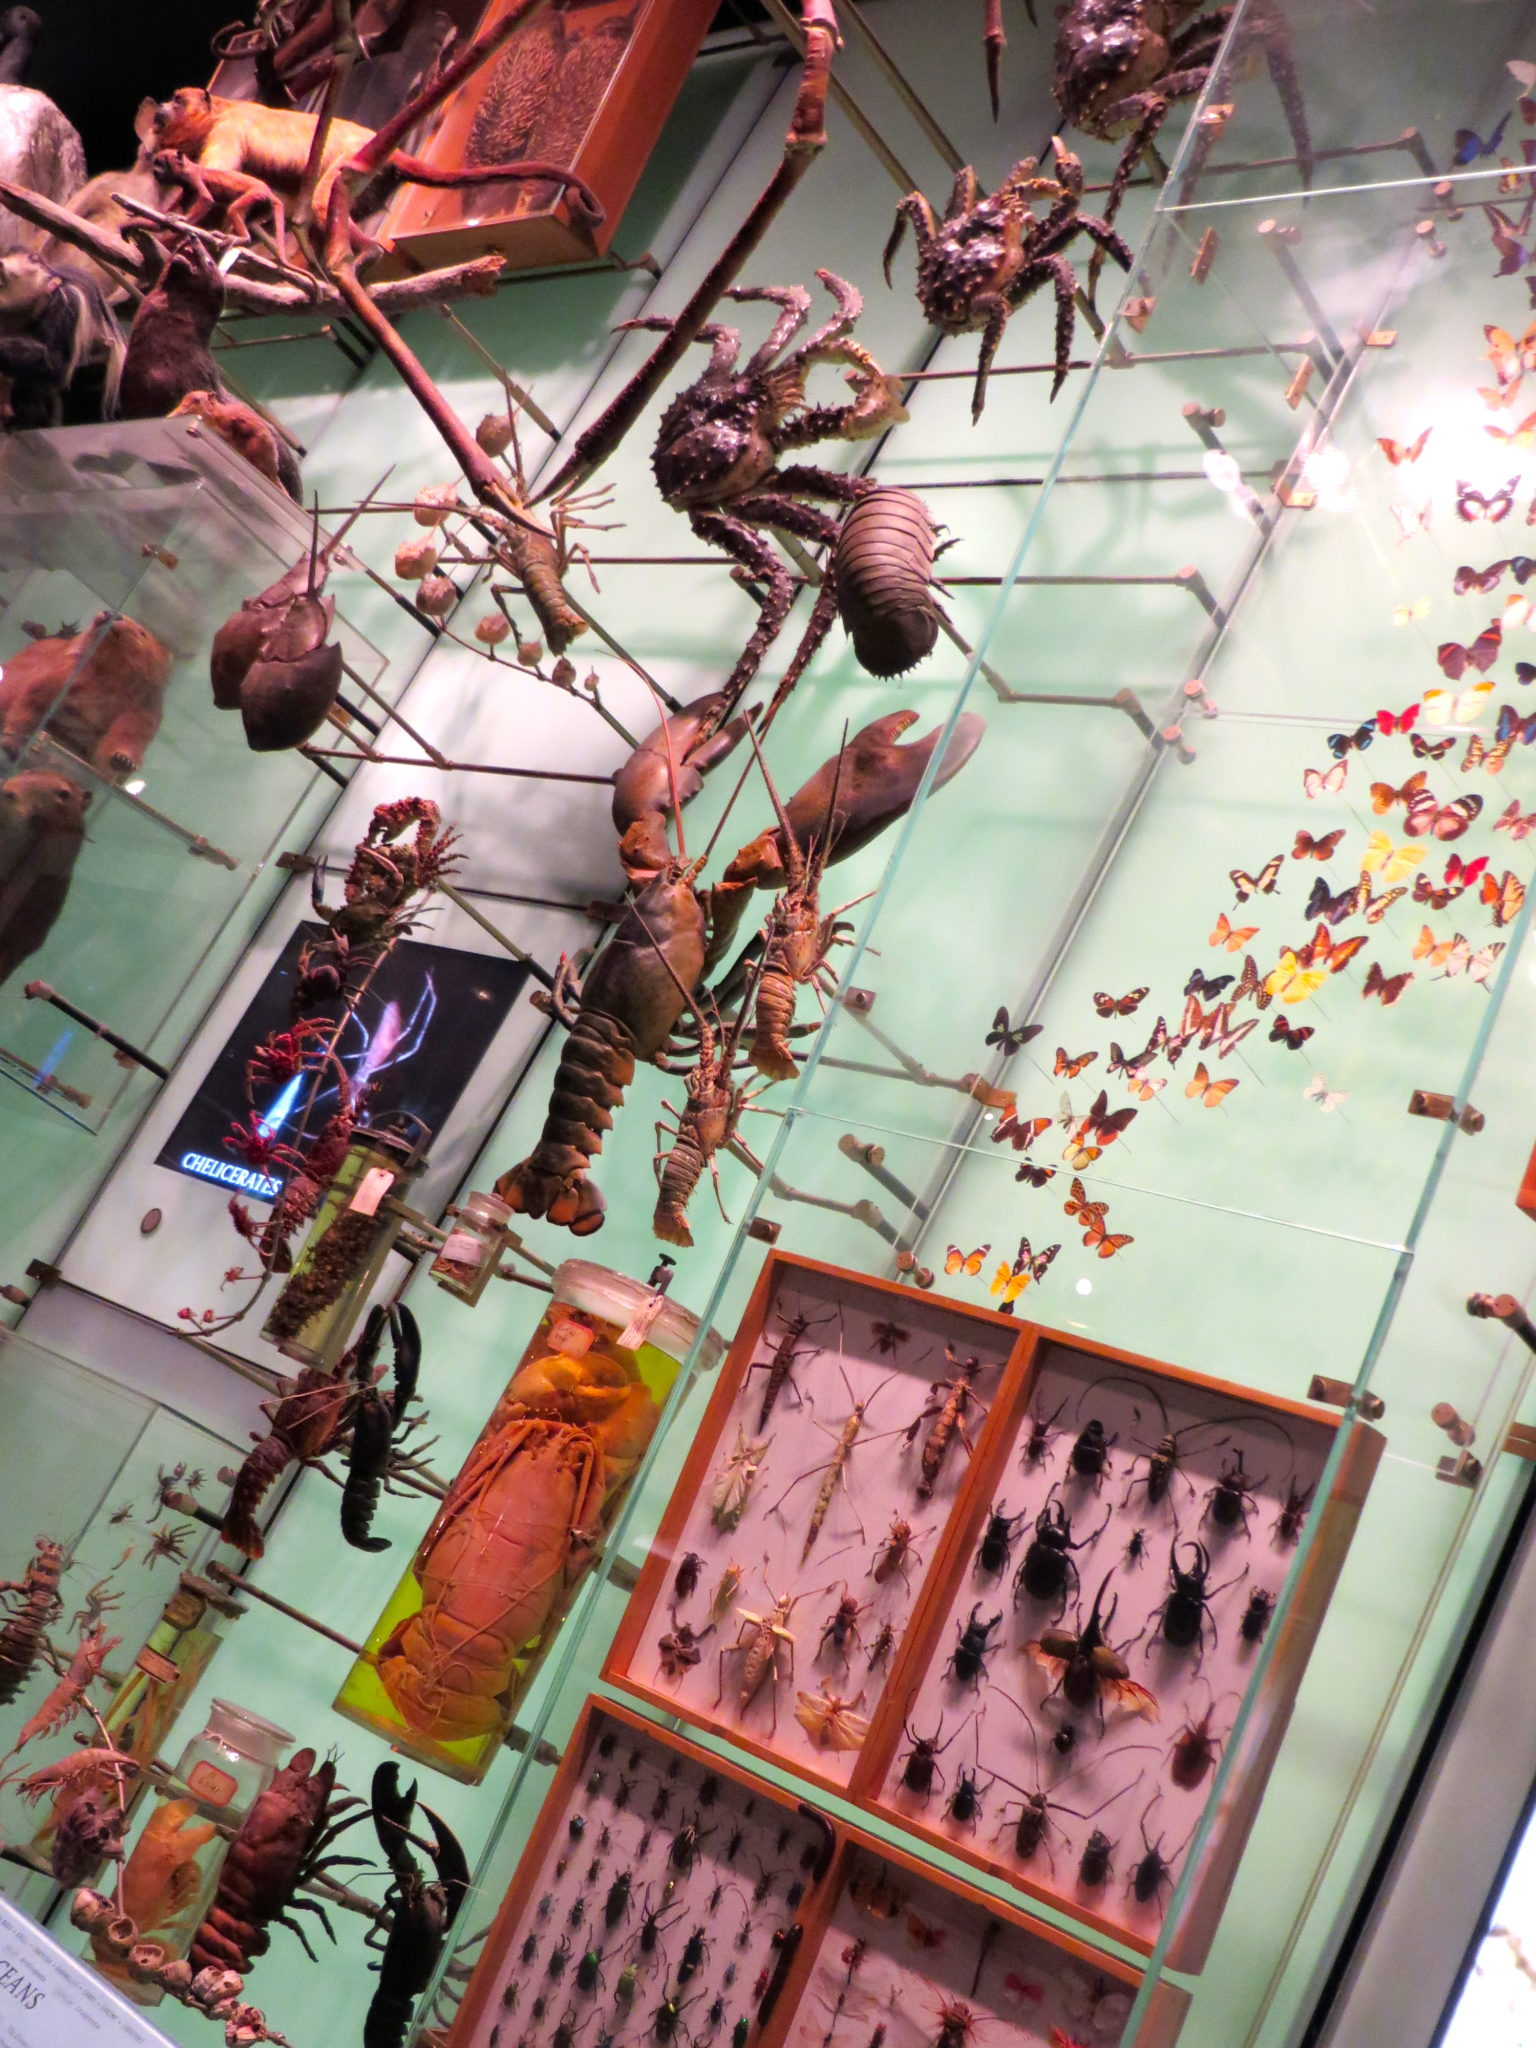 The Spectrum of Life, Hall of Biodiversity, American Museum of Natural History.